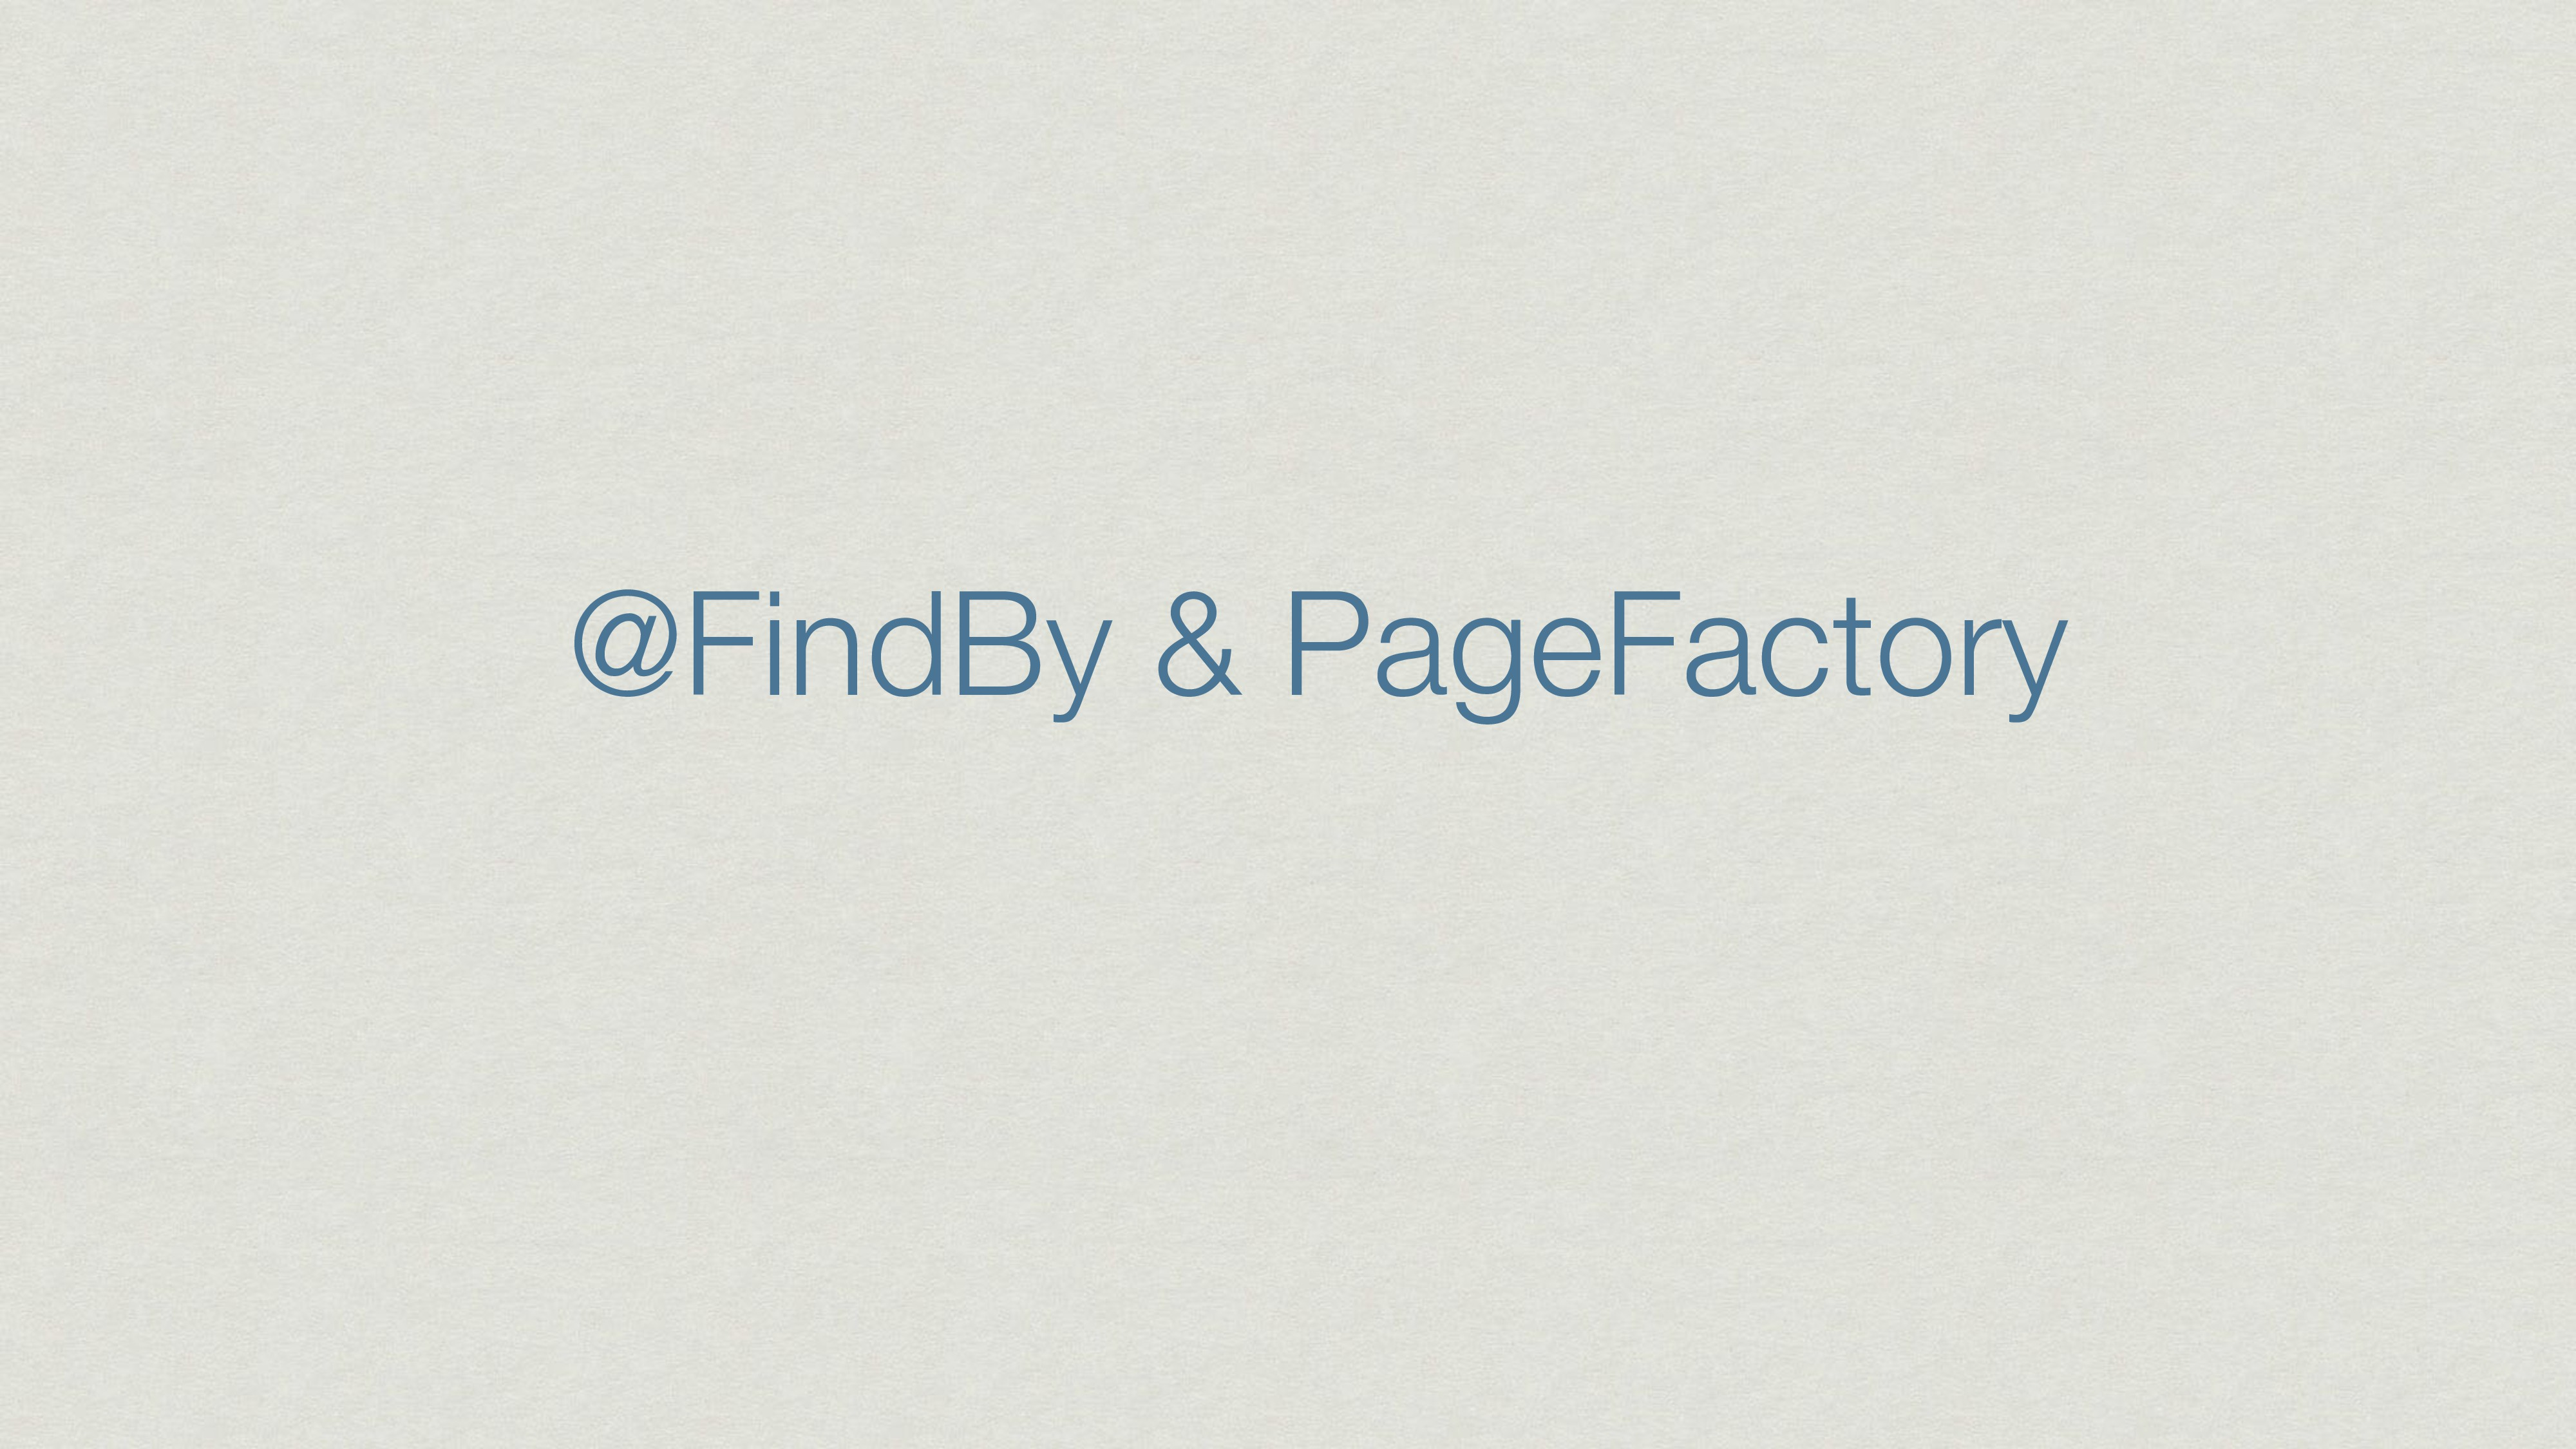 @FindBy & PageFactory